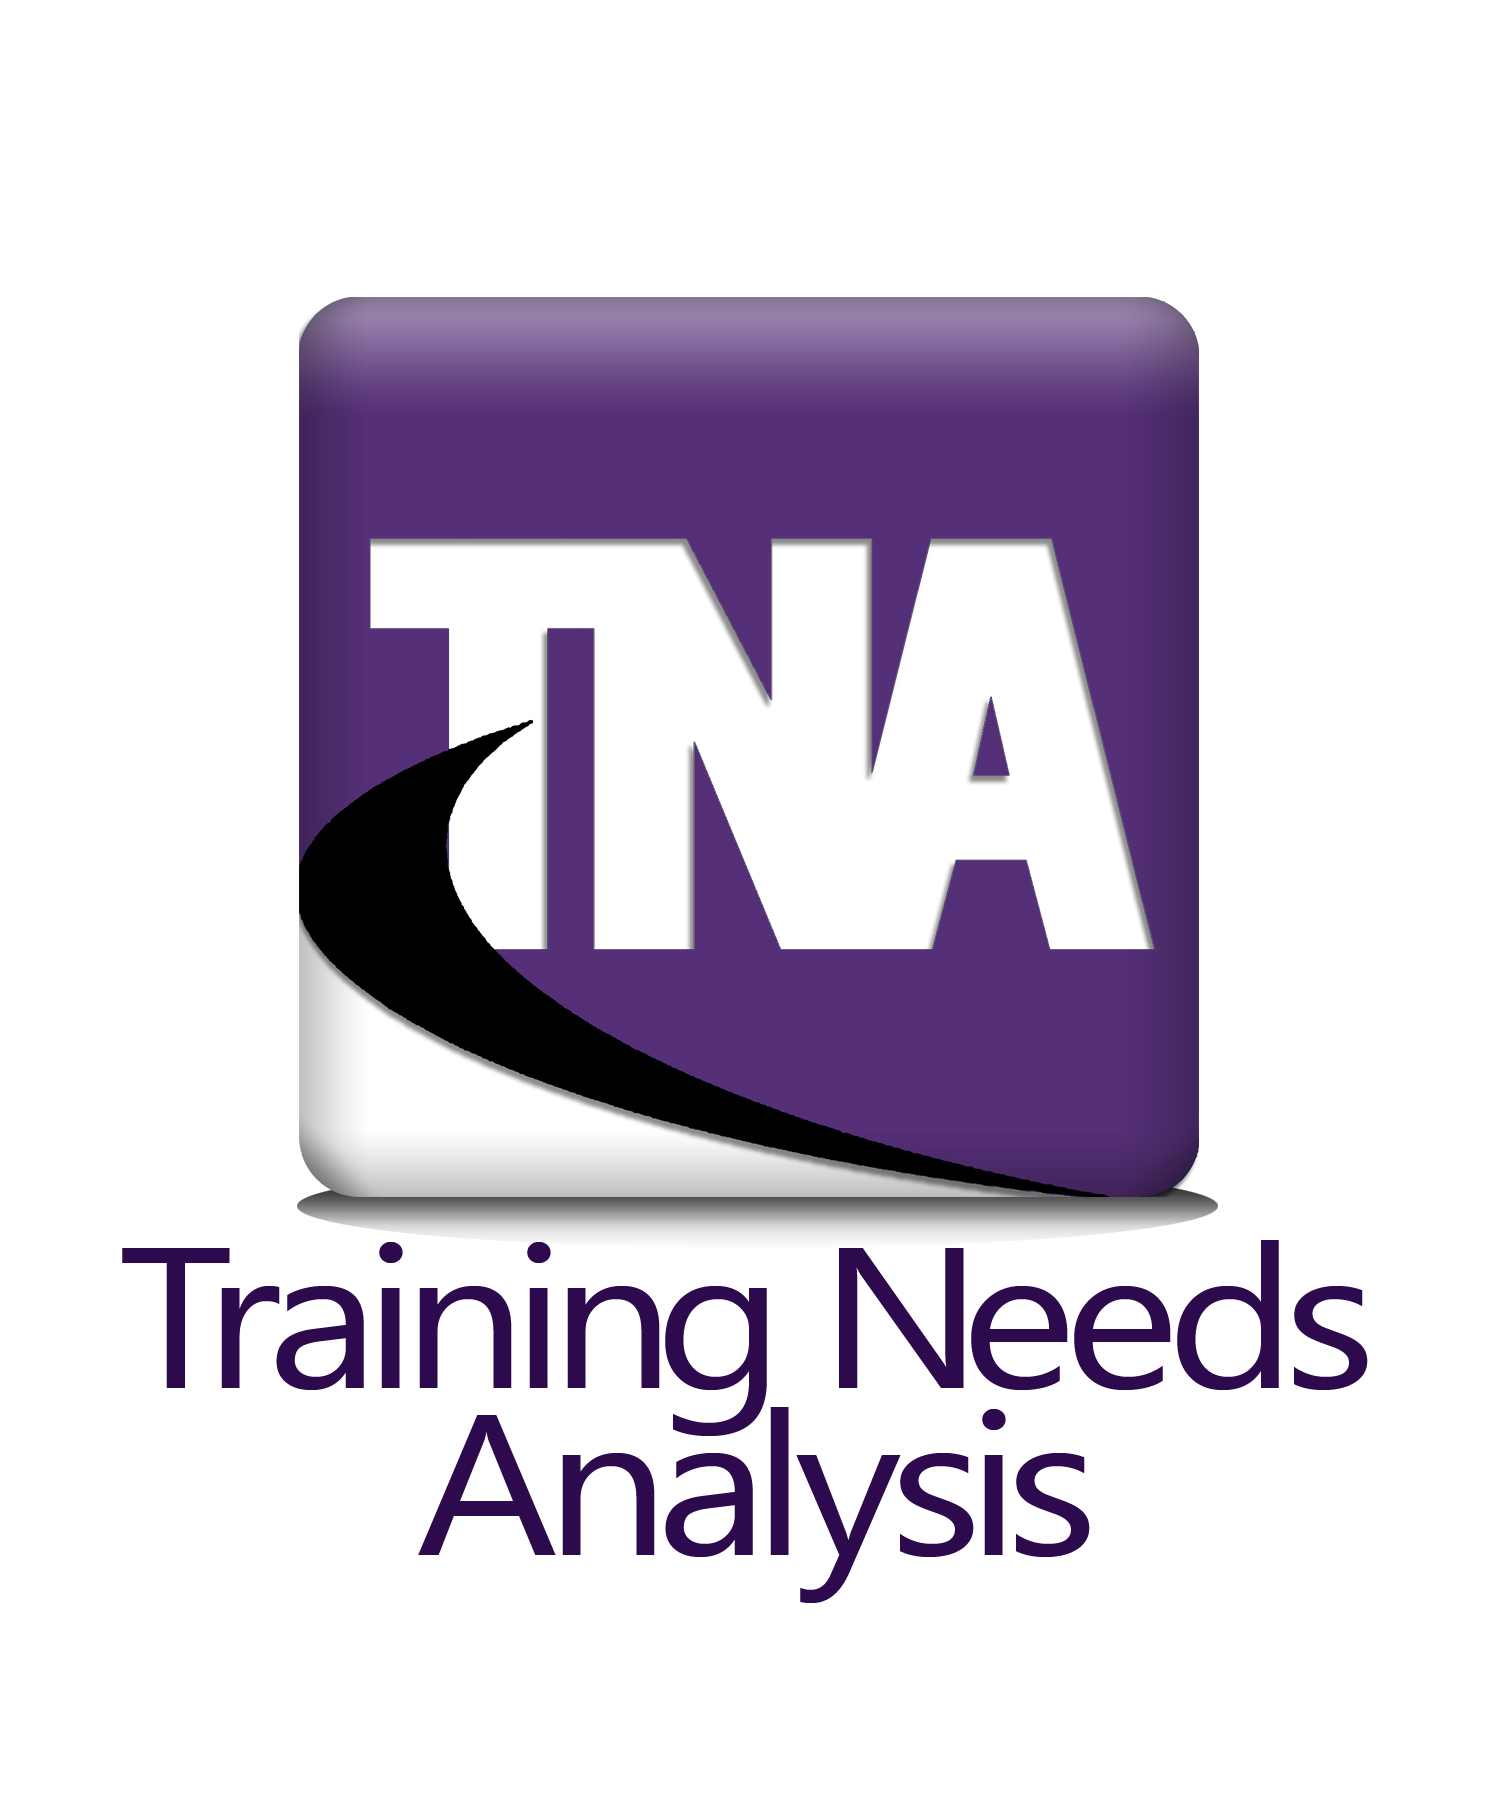 tna trainning needs analysis Doctoral researchers complete a training needs analysis with their supervisor   you may find these slides from a tna workshop useful in completing your tna.